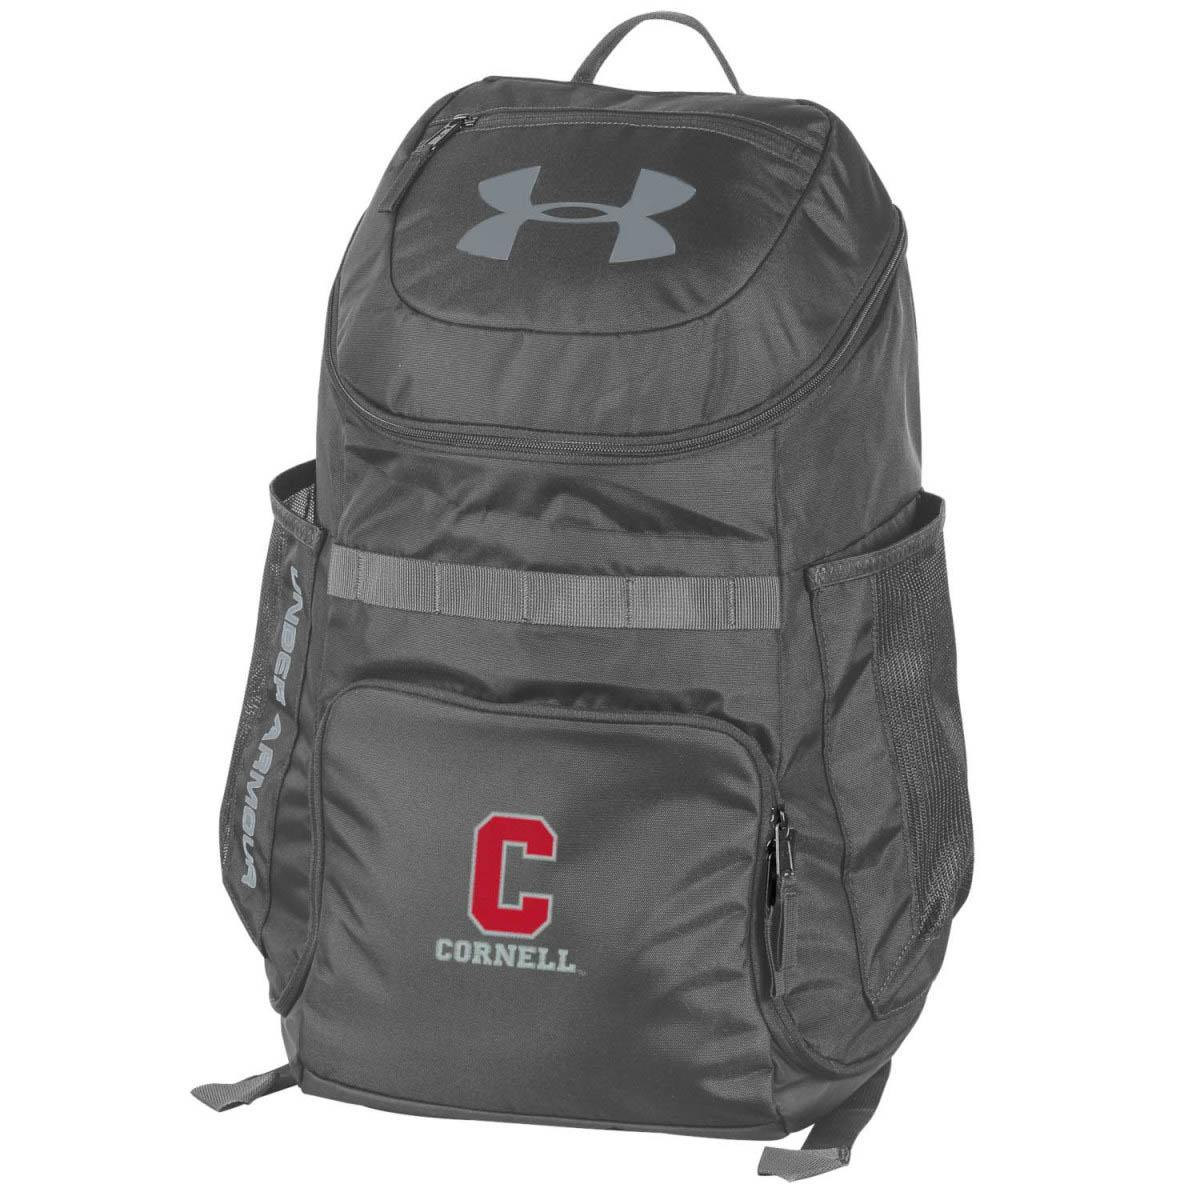 a182212bb4a Under Armour Backpack - Gray - Up To 15 Inch Laptop